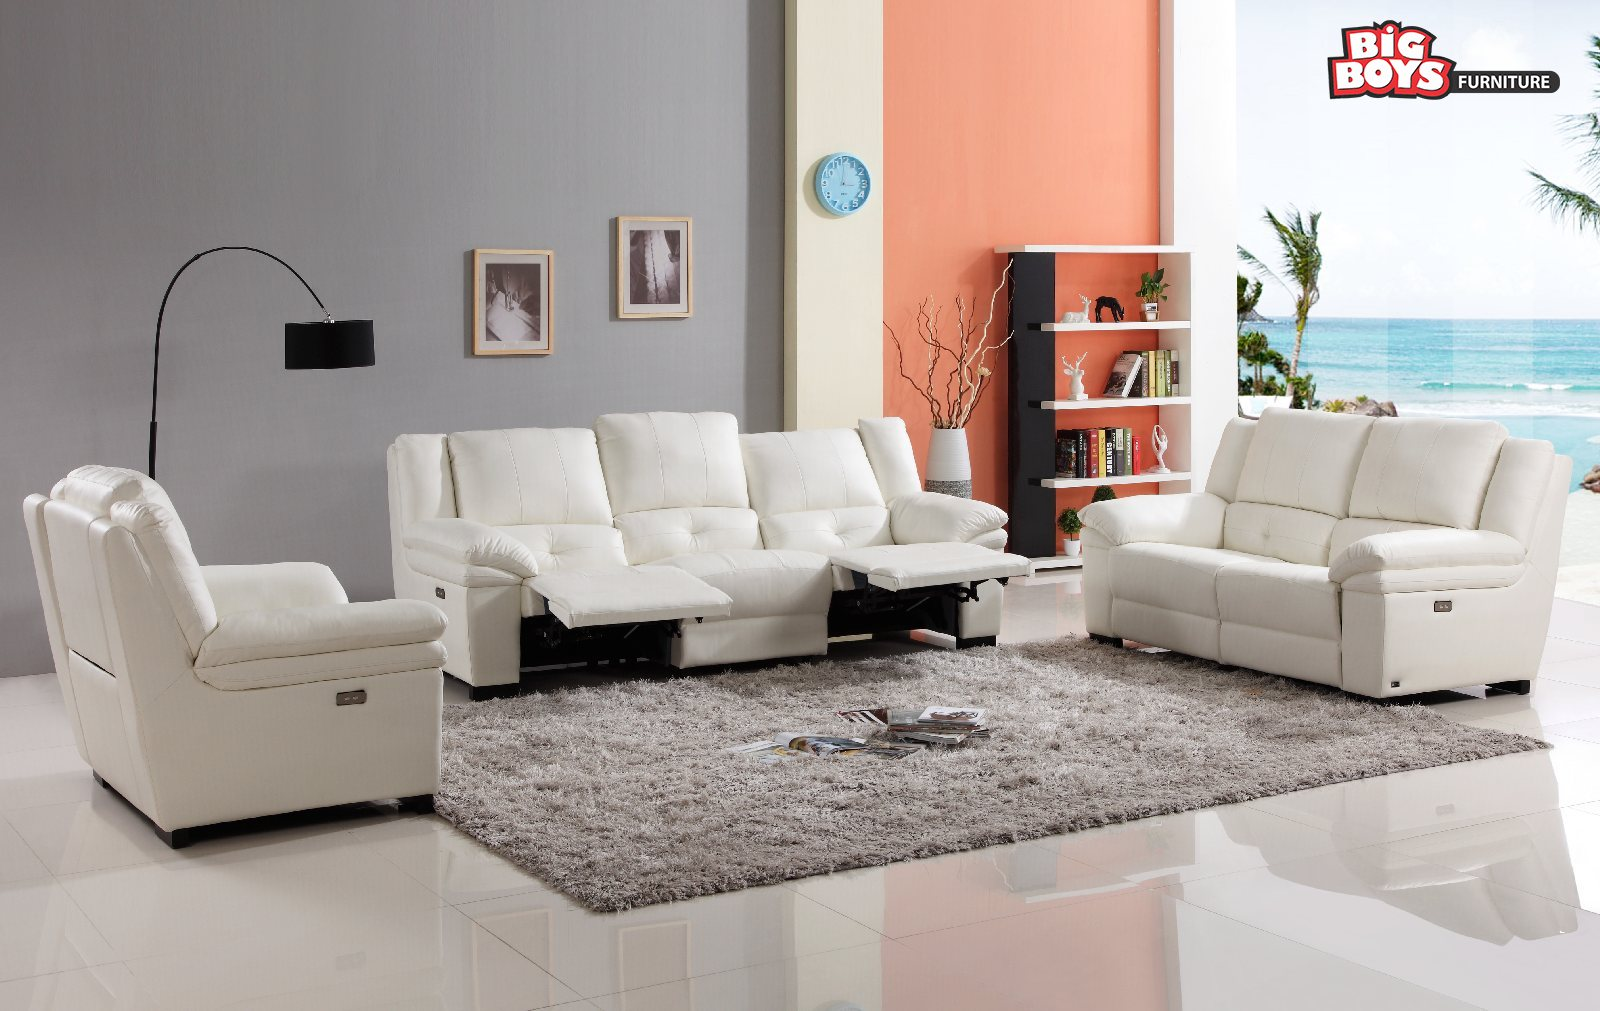 Sofa Set with unique designs and shapes